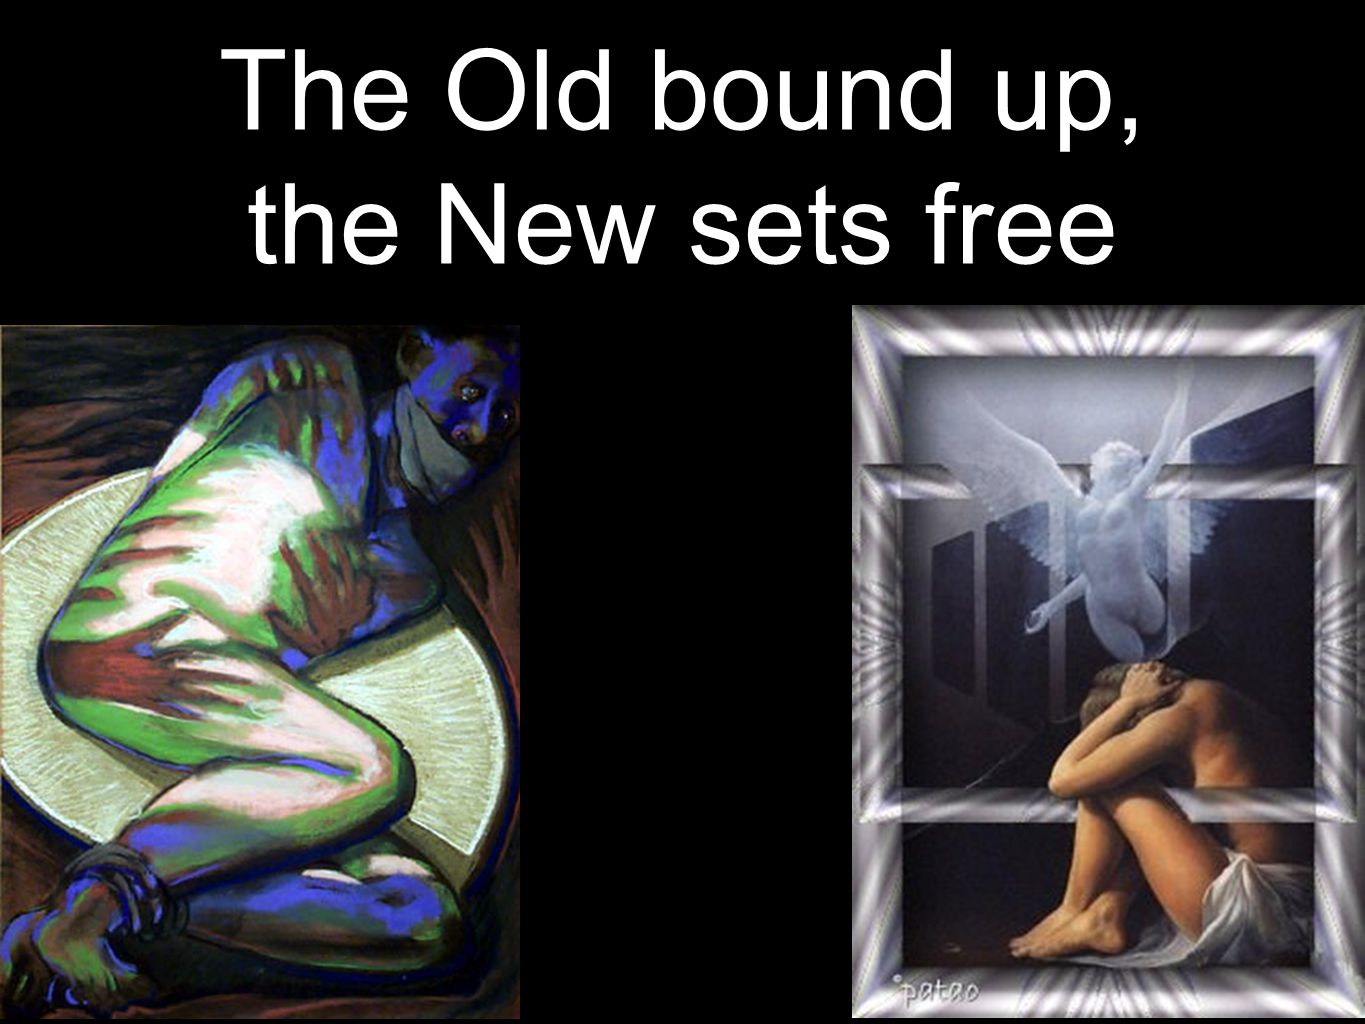 The Old bound up, the New sets free